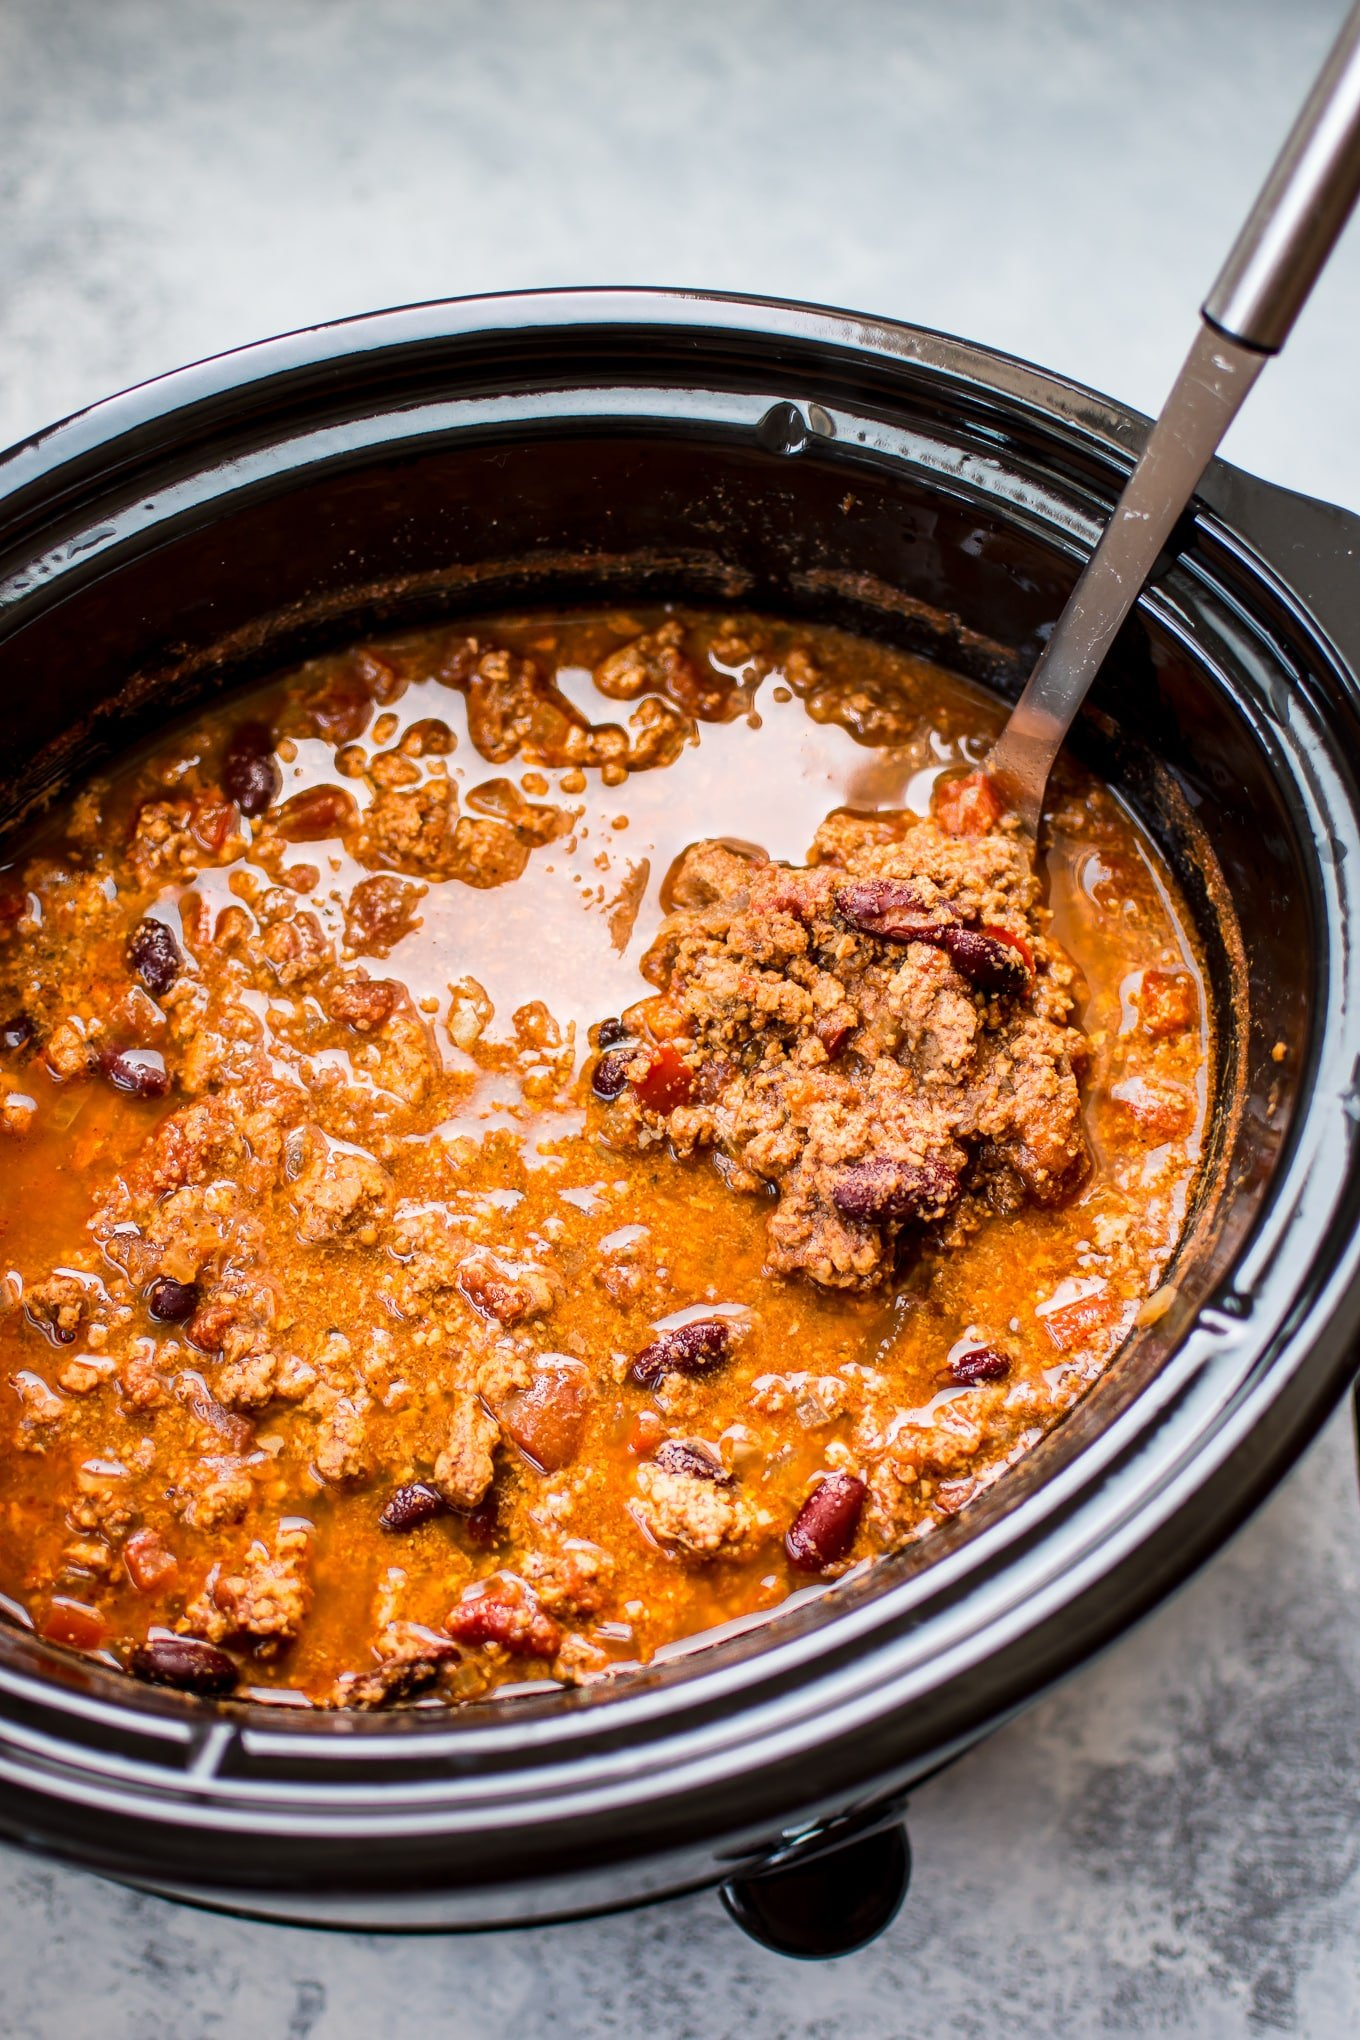 This easy crockpot turkey chili recipe is healthy, hearty, and comforting. A big batch will give you tons of tasty leftovers!